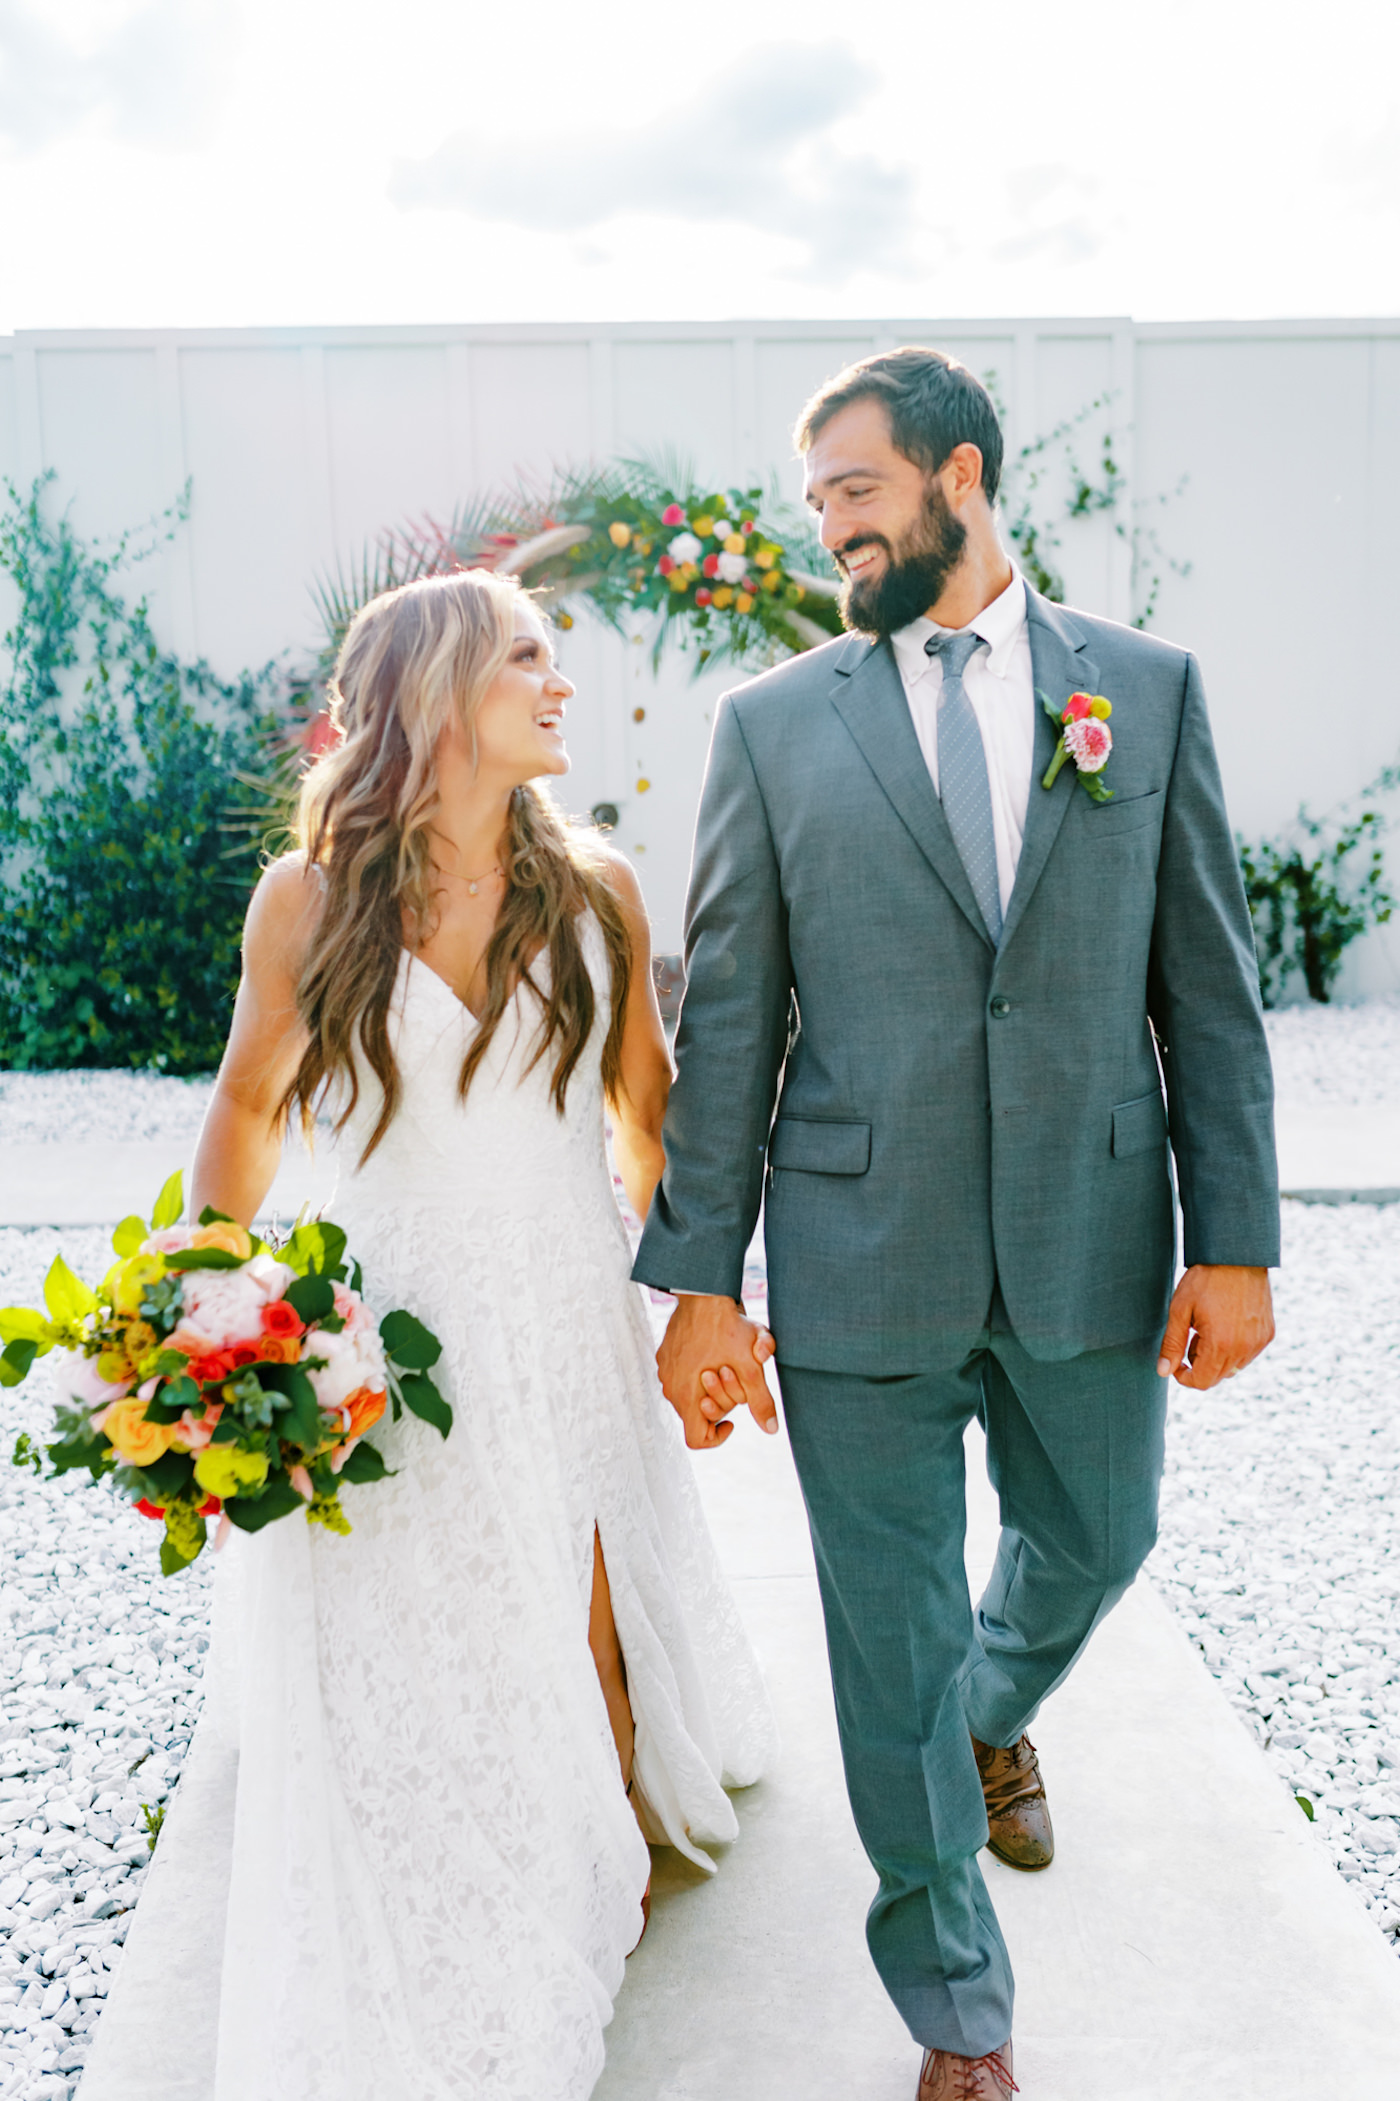 Bright Colorful Florida Citrus Wedding Inspiration | Bridal Bouquet with Pink Orange and Yellow Roses | Groom in Grey Suit with Grey Neck Tie